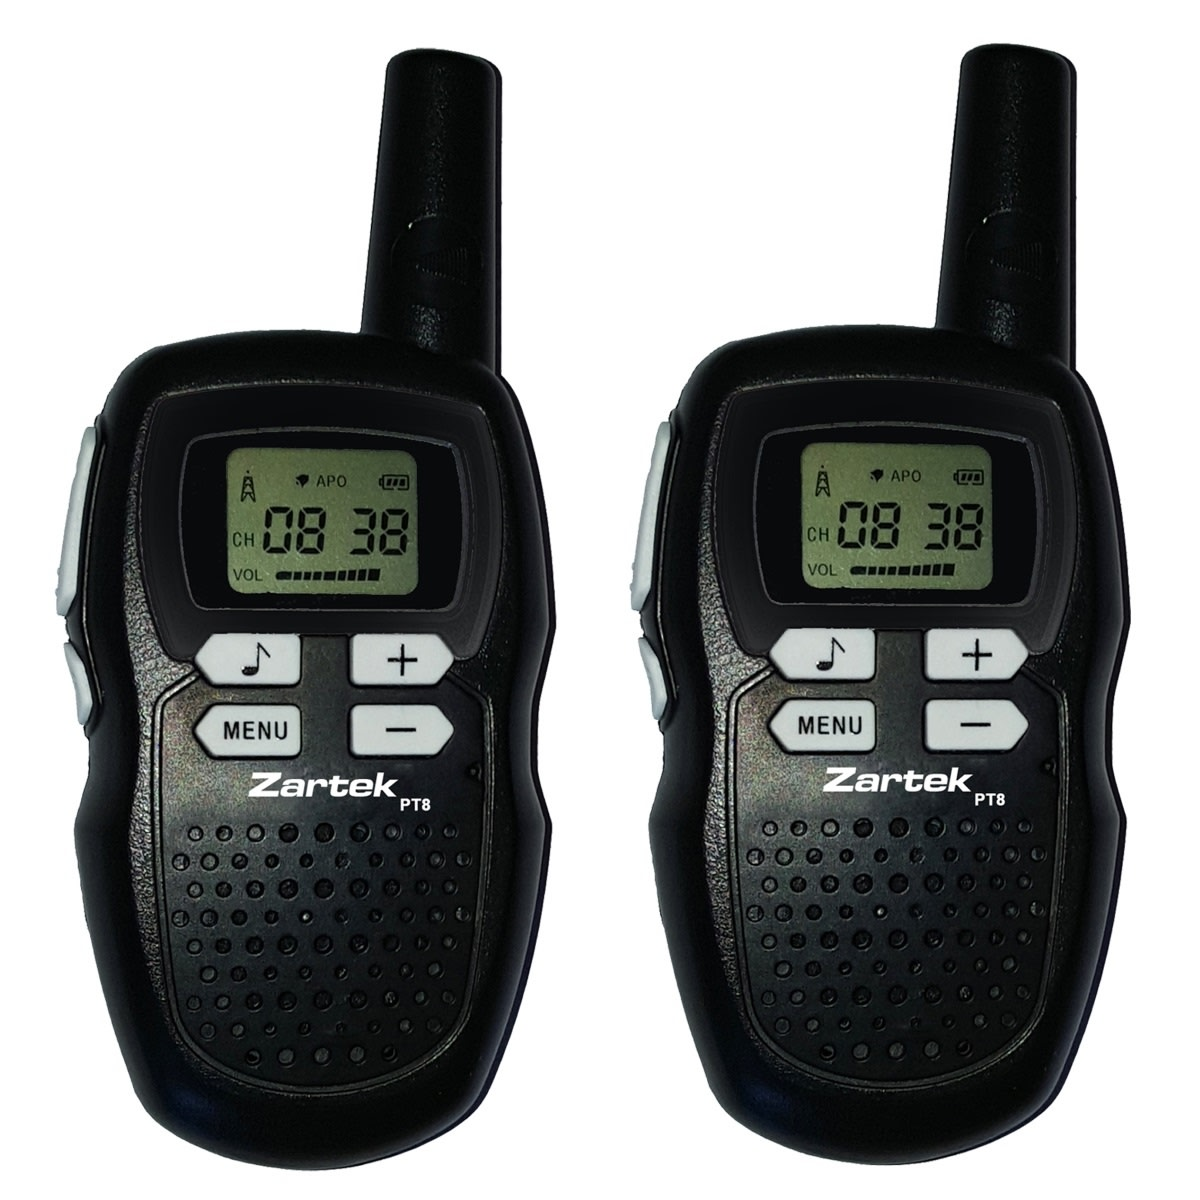 Zartek PT8 Two-Way Radio's Twin Pack